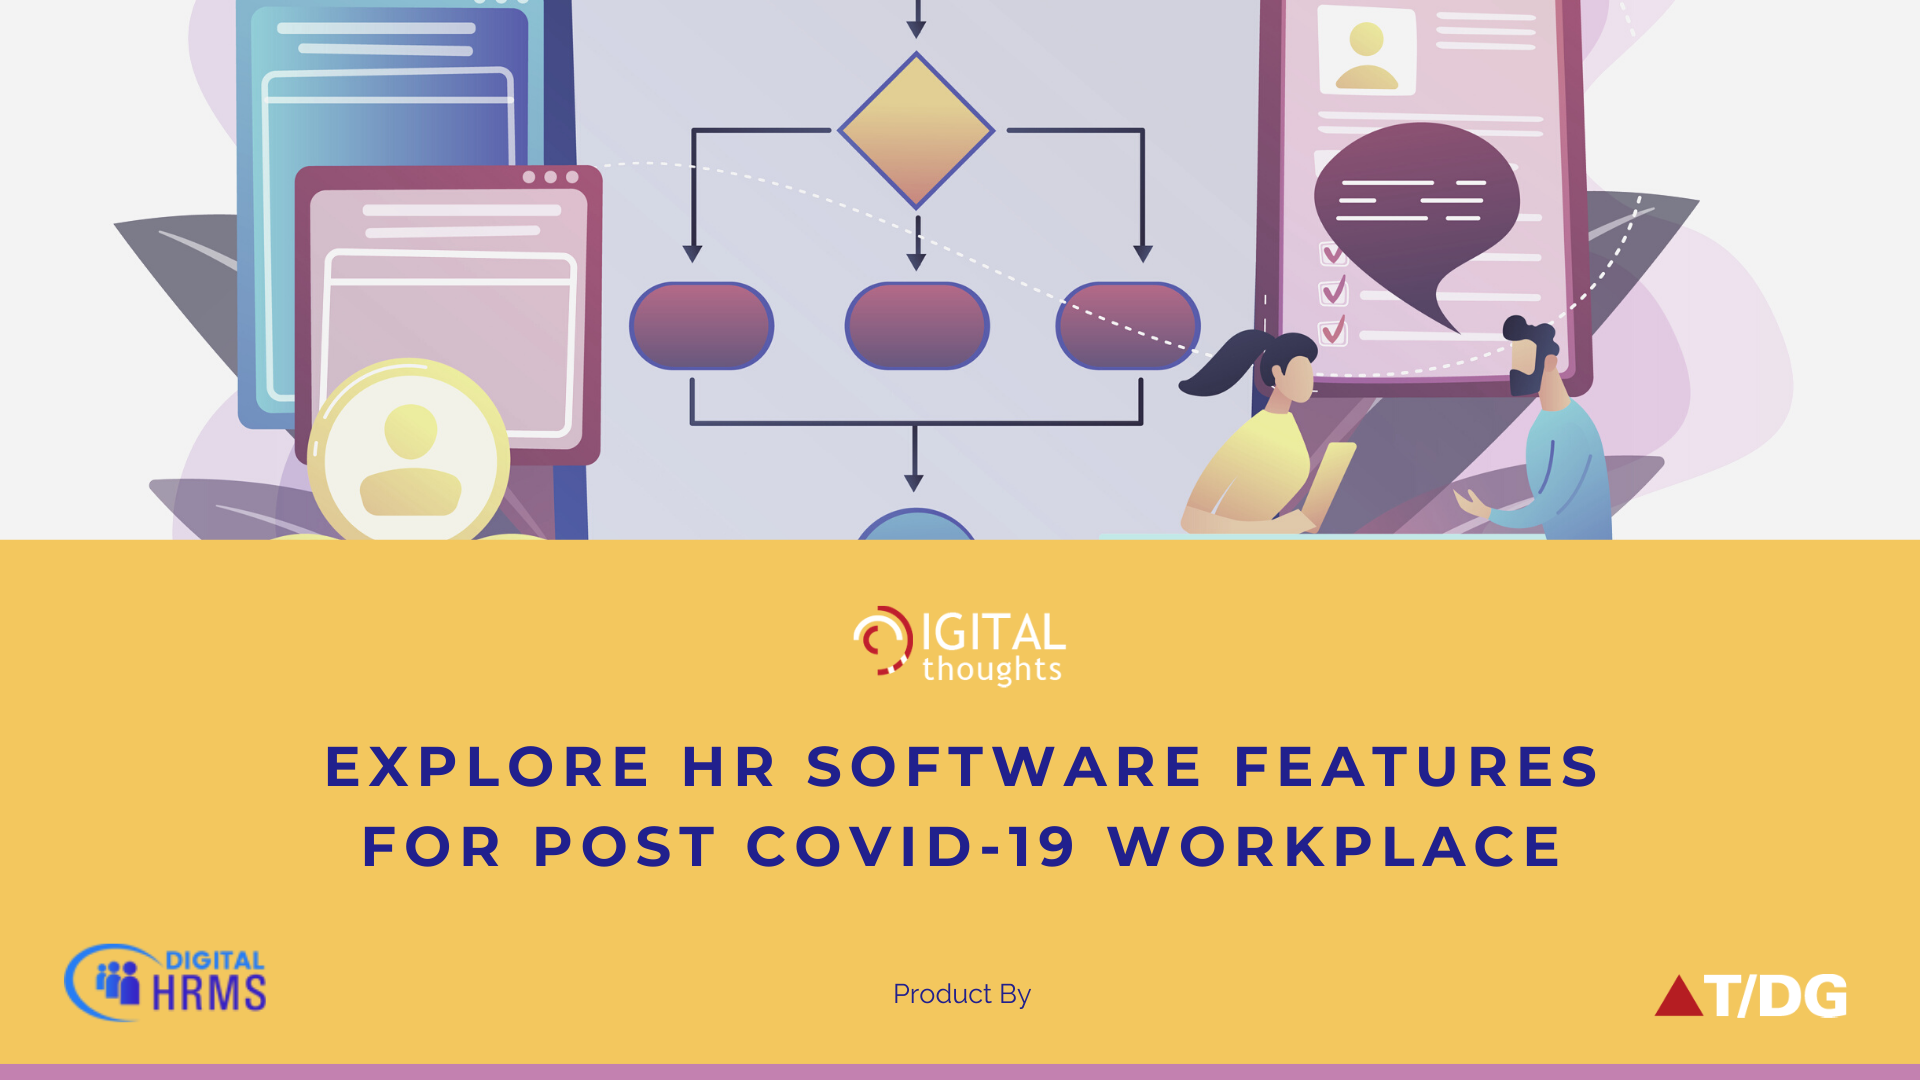 Top 5 Must Have HR Software Features for the Post Covid-19 Workplace